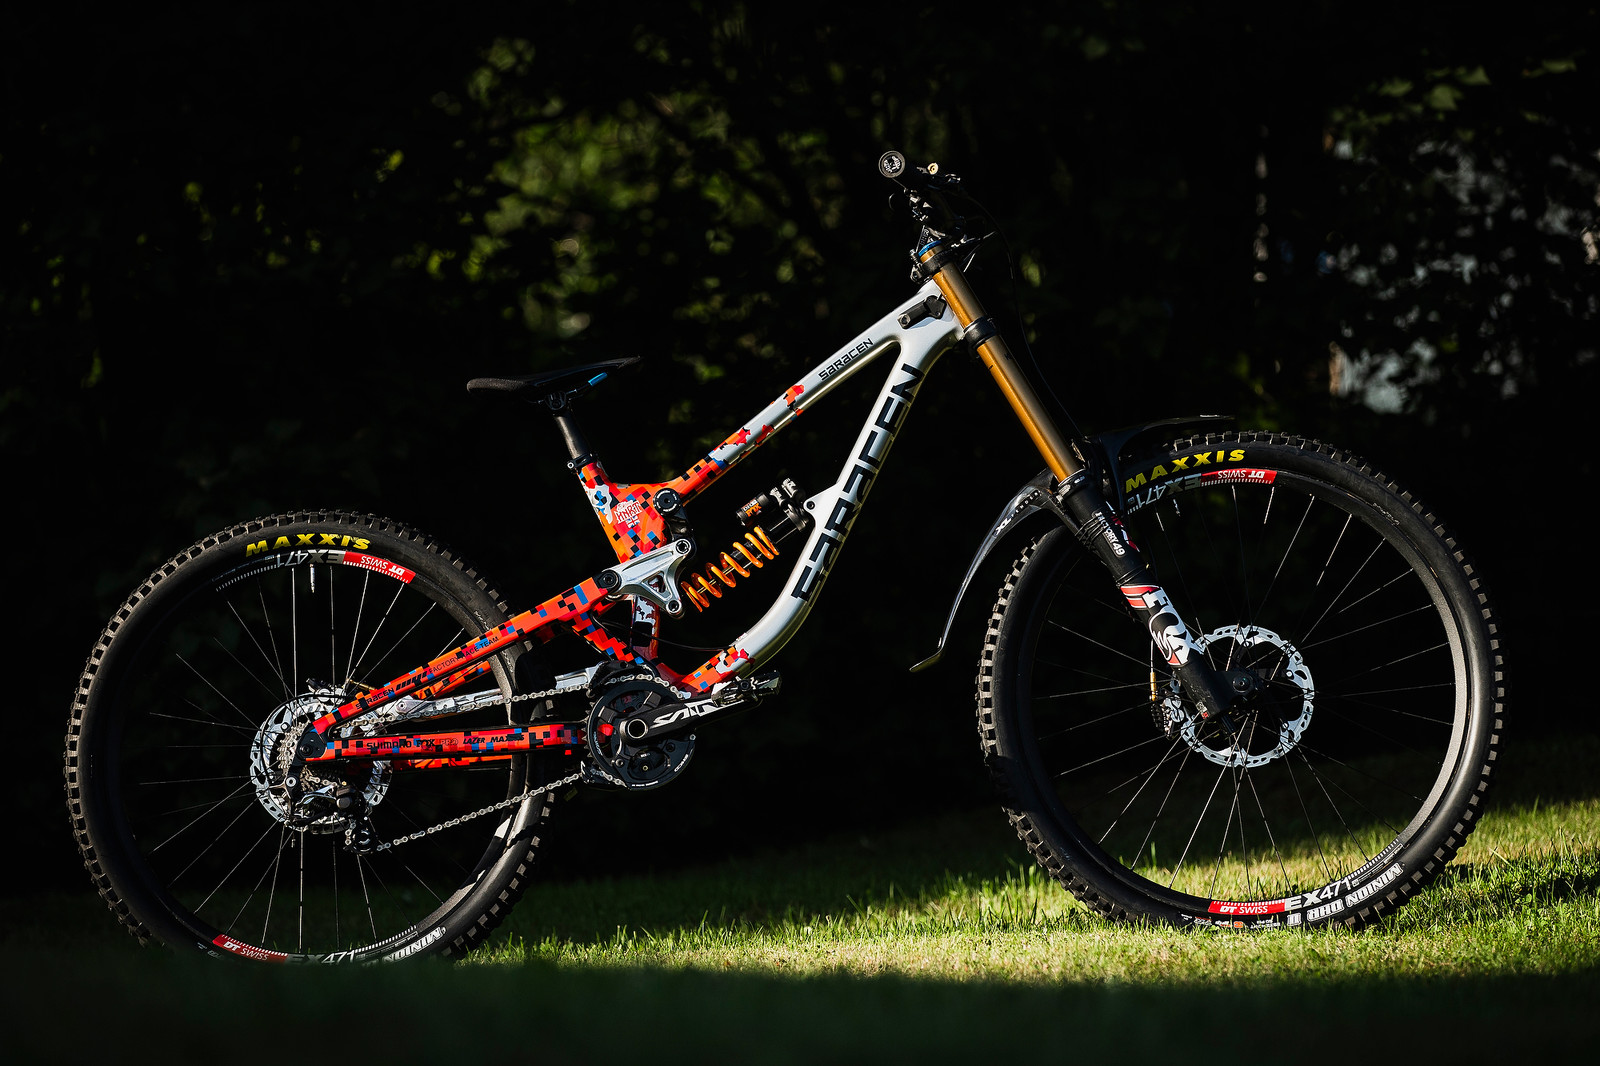 Danny Hart's Saracen Myst at 2019 Worlds MSA - Danny Hart's Saracen Myst at 2019 Worlds MSA - Mountain Biking Pictures - Vital MTB